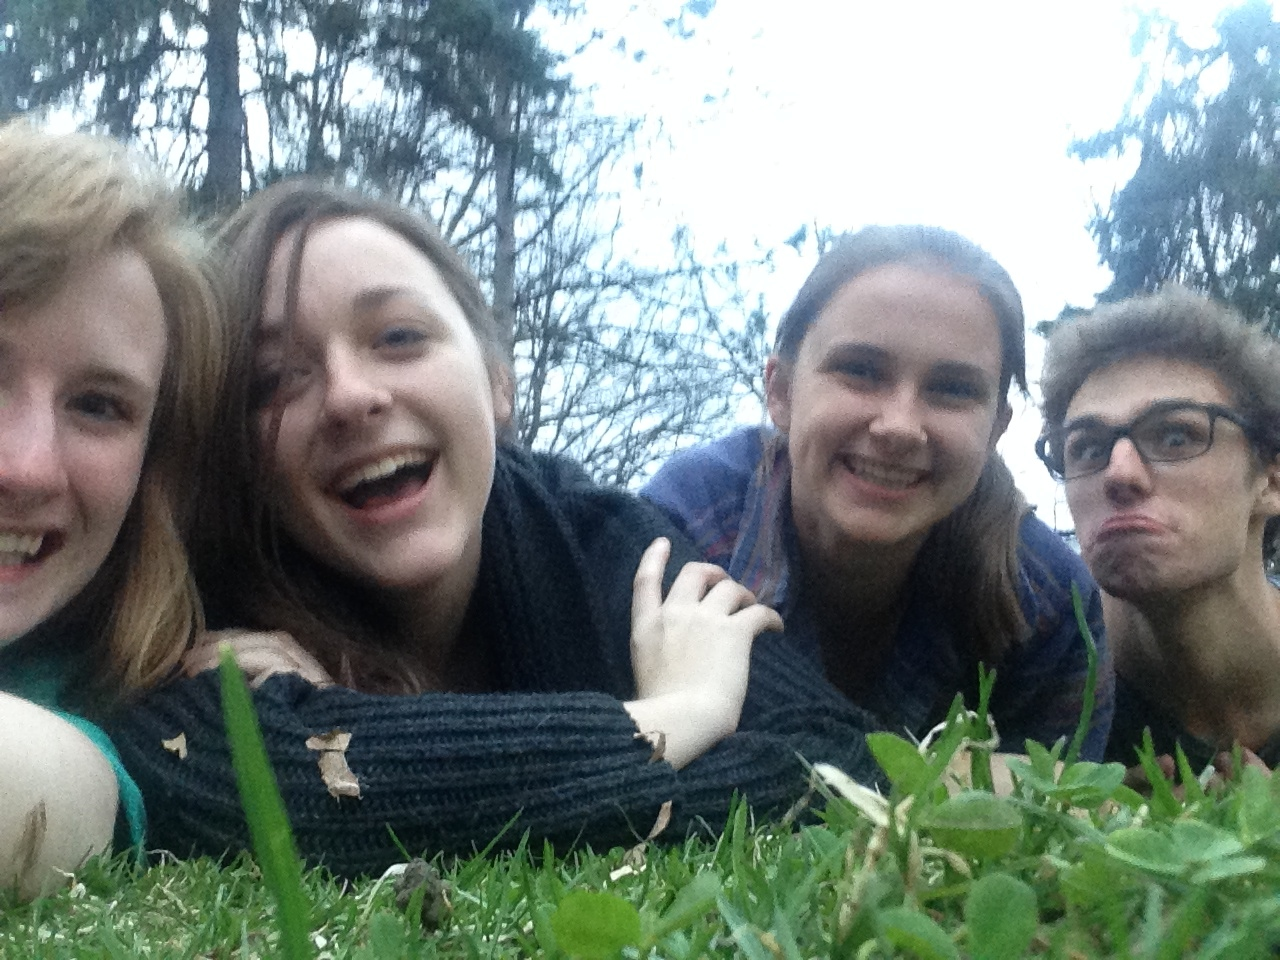 Four students lying in the grass in a selfie